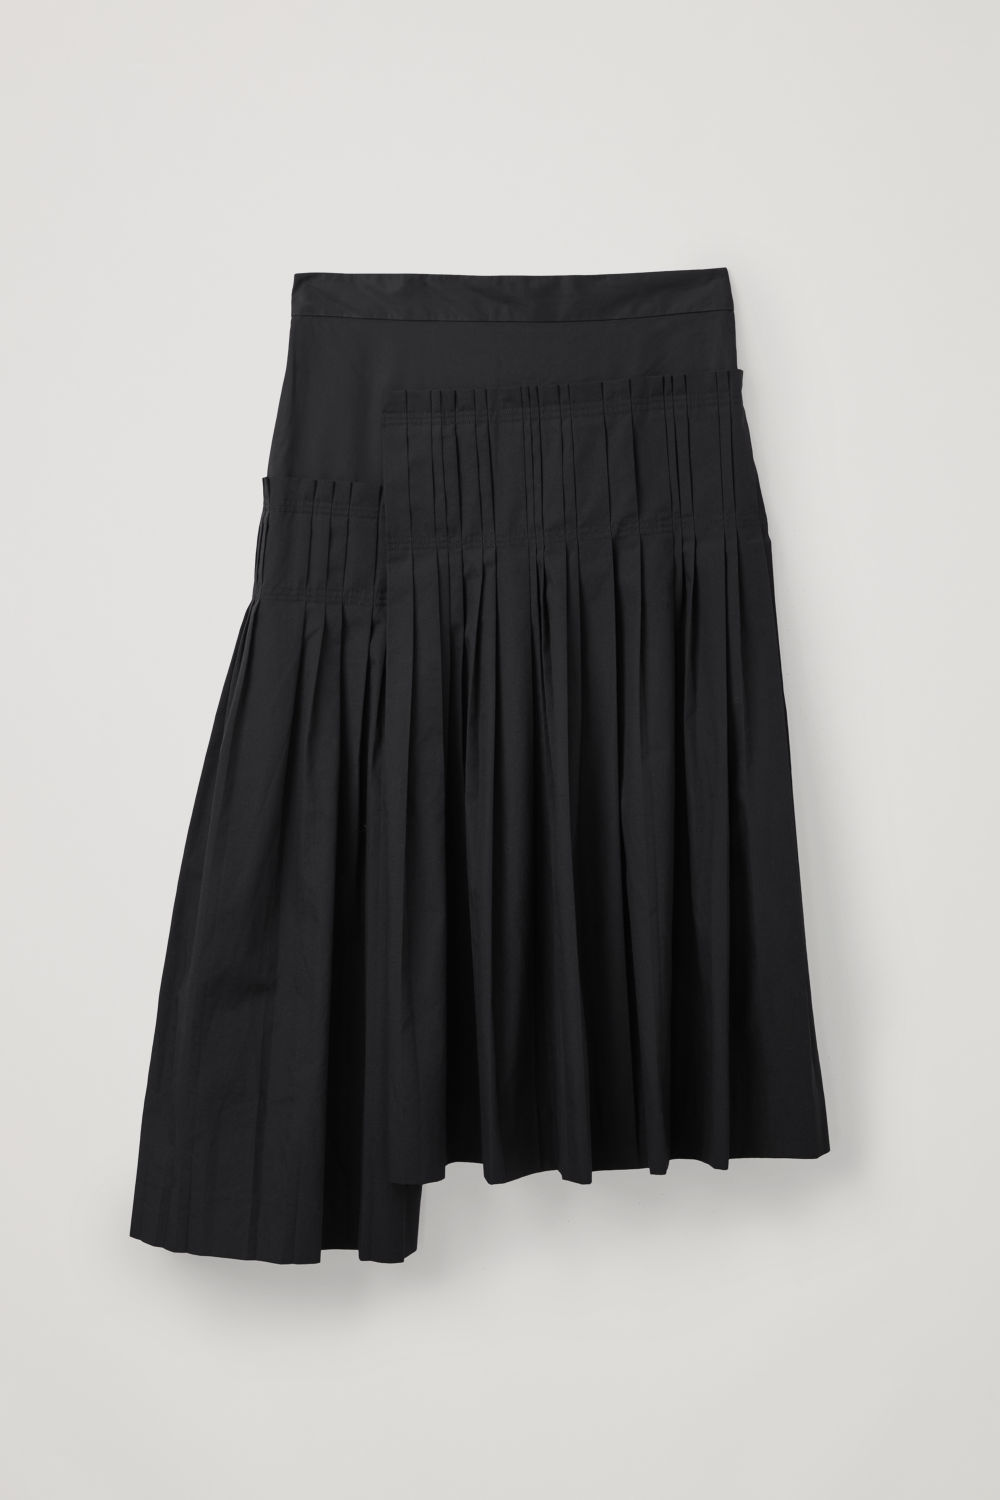 63d1594f65e PLEATED-PANEL SKIRT PLEATED-PANEL SKIRT